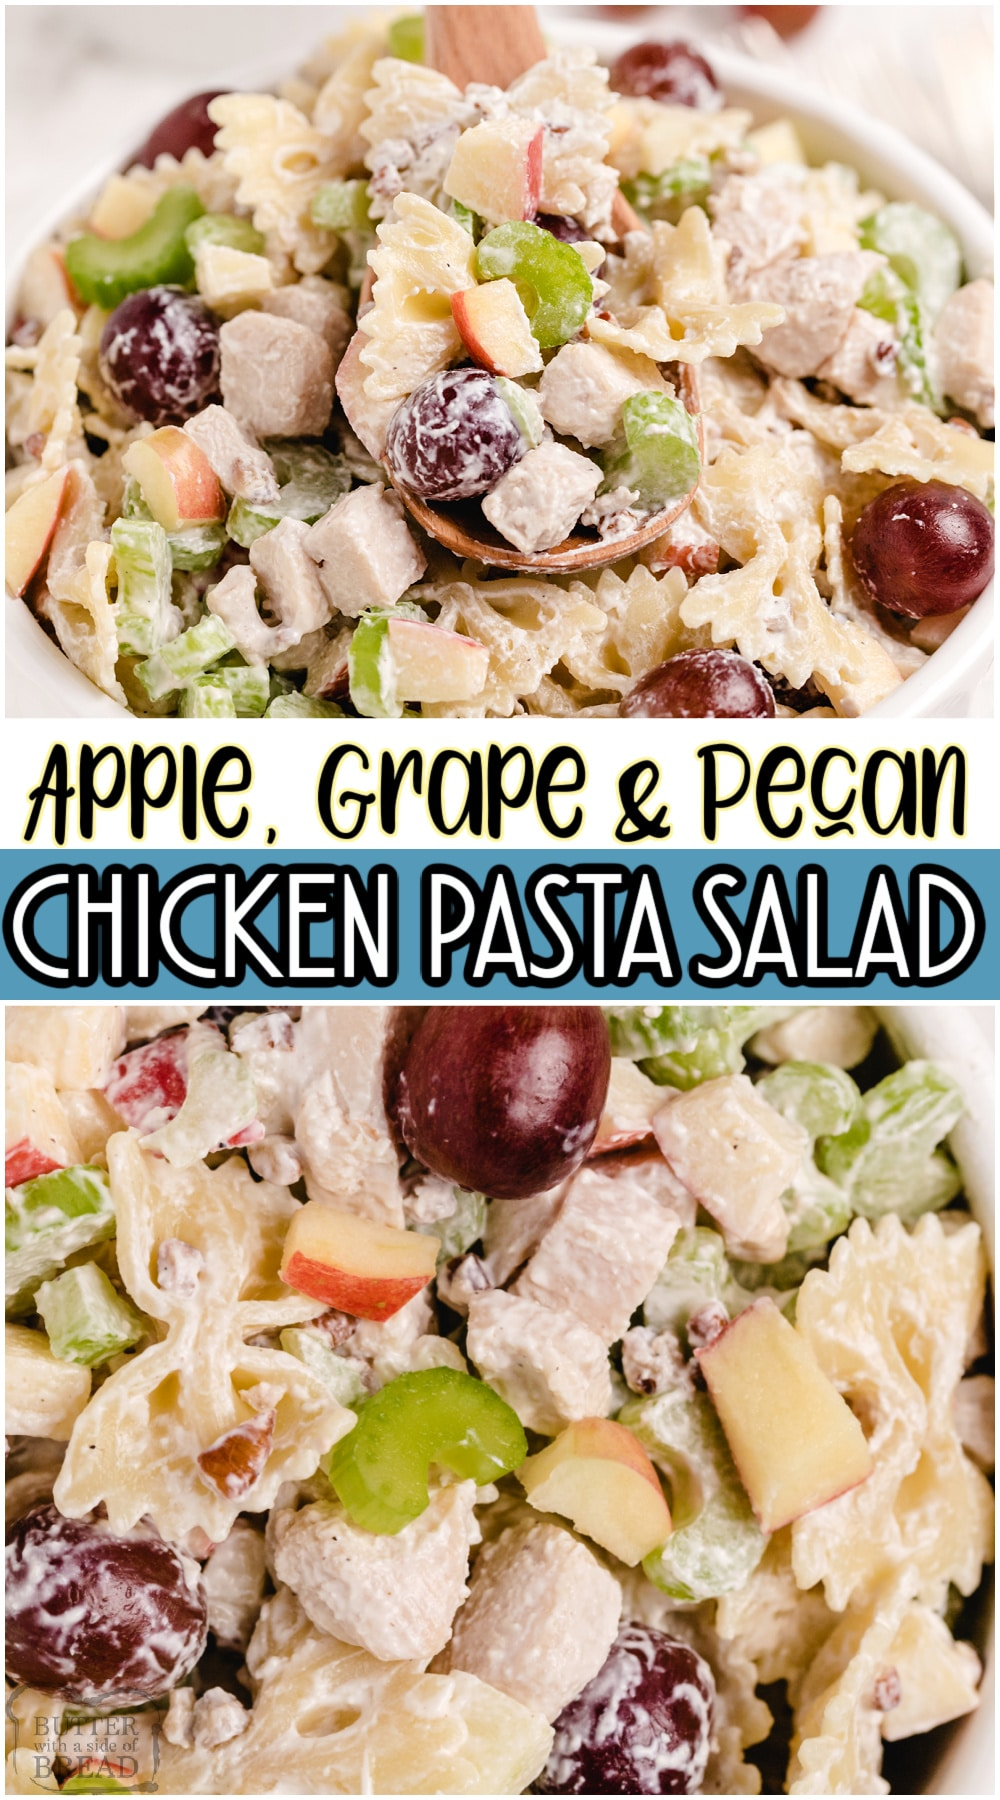 Chicken Pasta Salad is a lovely summer meal filled with tender chicken, apples, grapes, celery & pecans. Our Pasta Salad recipe is topped with a light dressing, grapes & chopped pecans. #pasta #salad #apples #pecans #chicken #easyrecipe from BUTTER WITH A SIDE OF BREAD